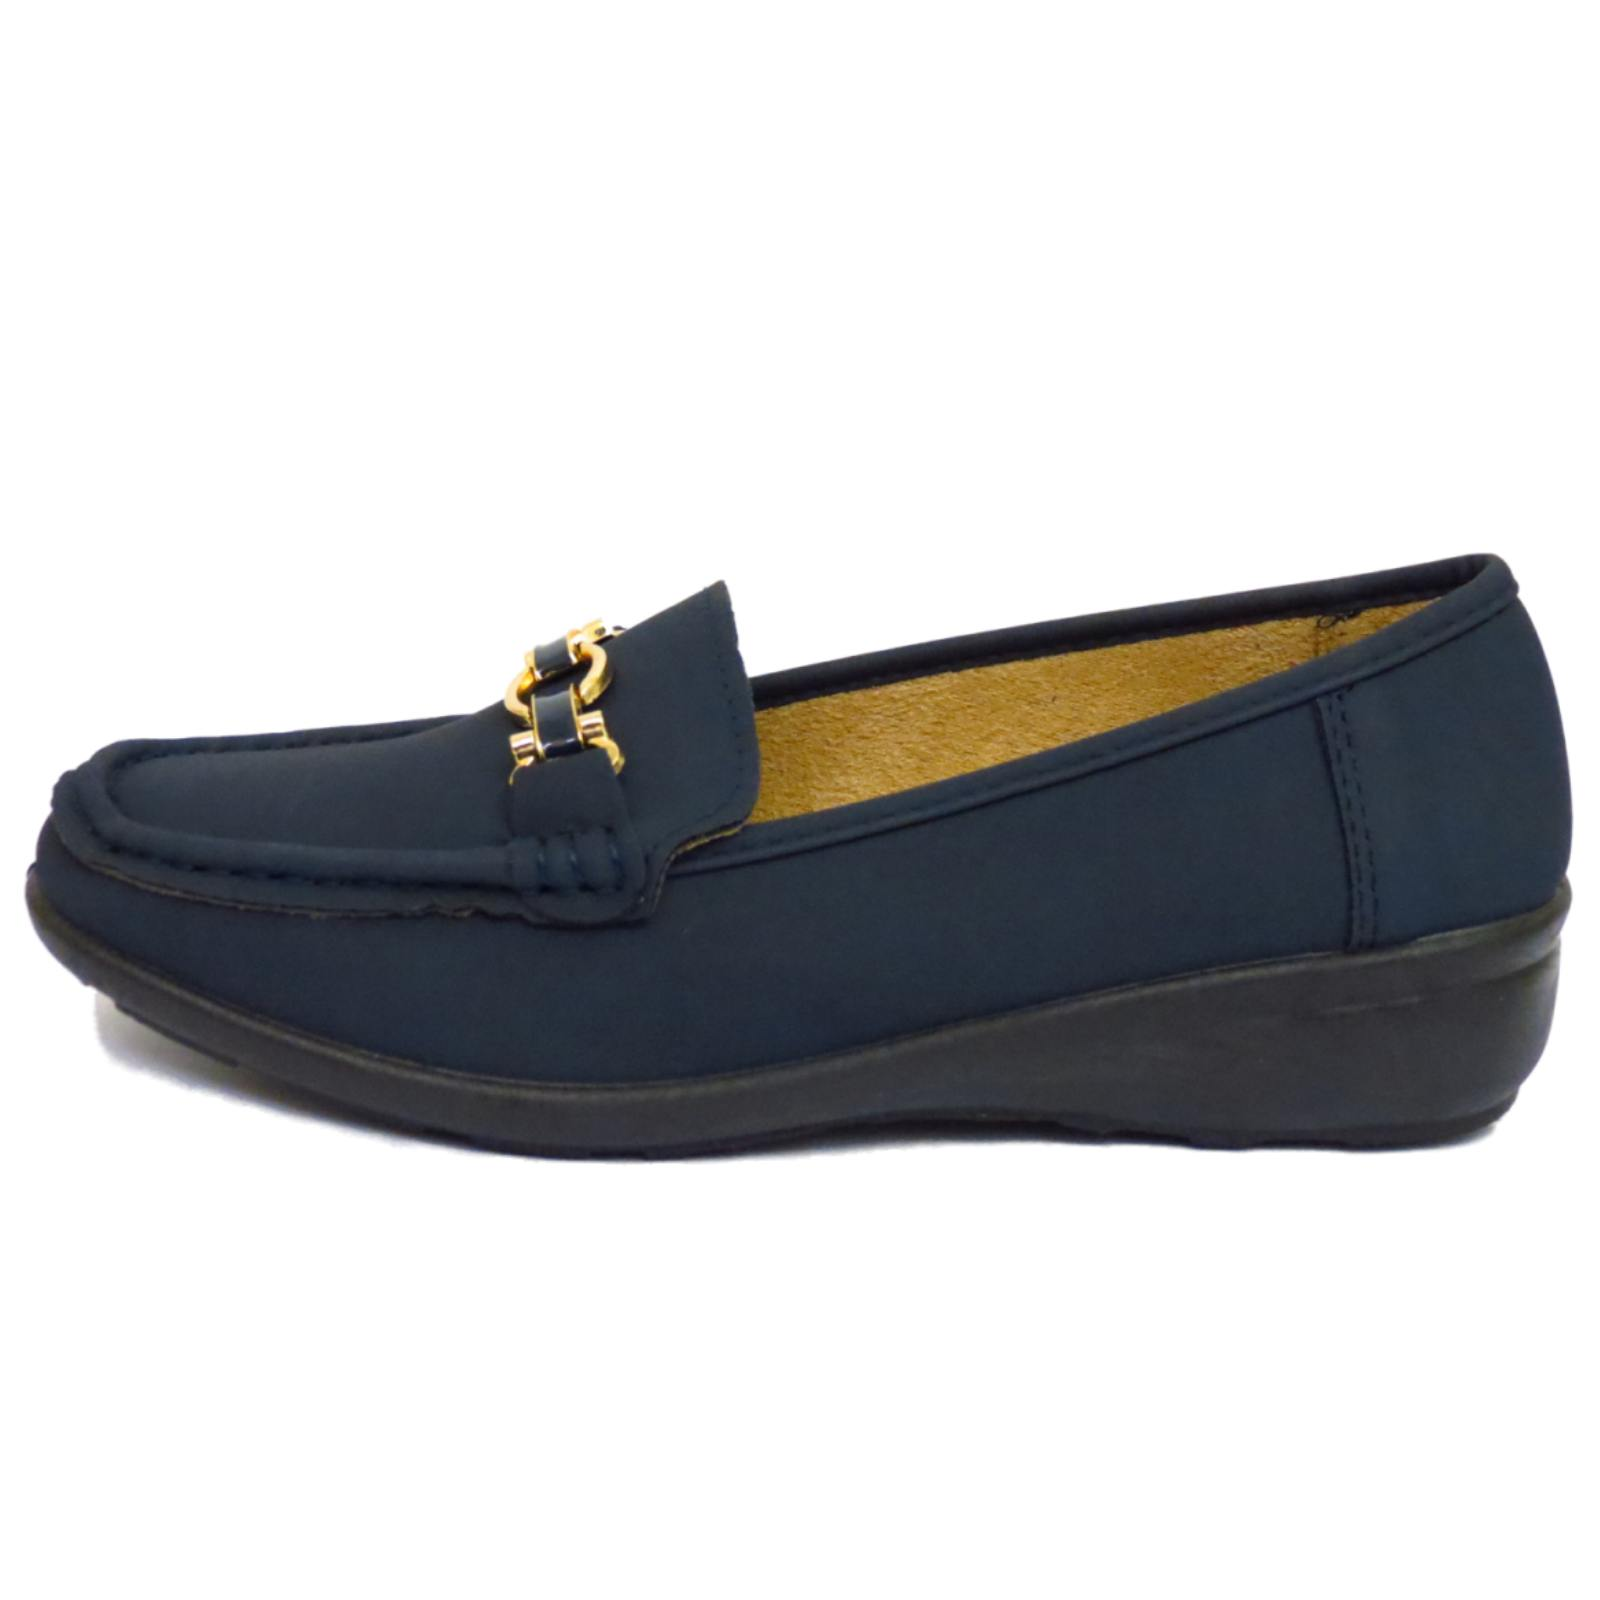 navy slip on pumps comfy work moccasin casual